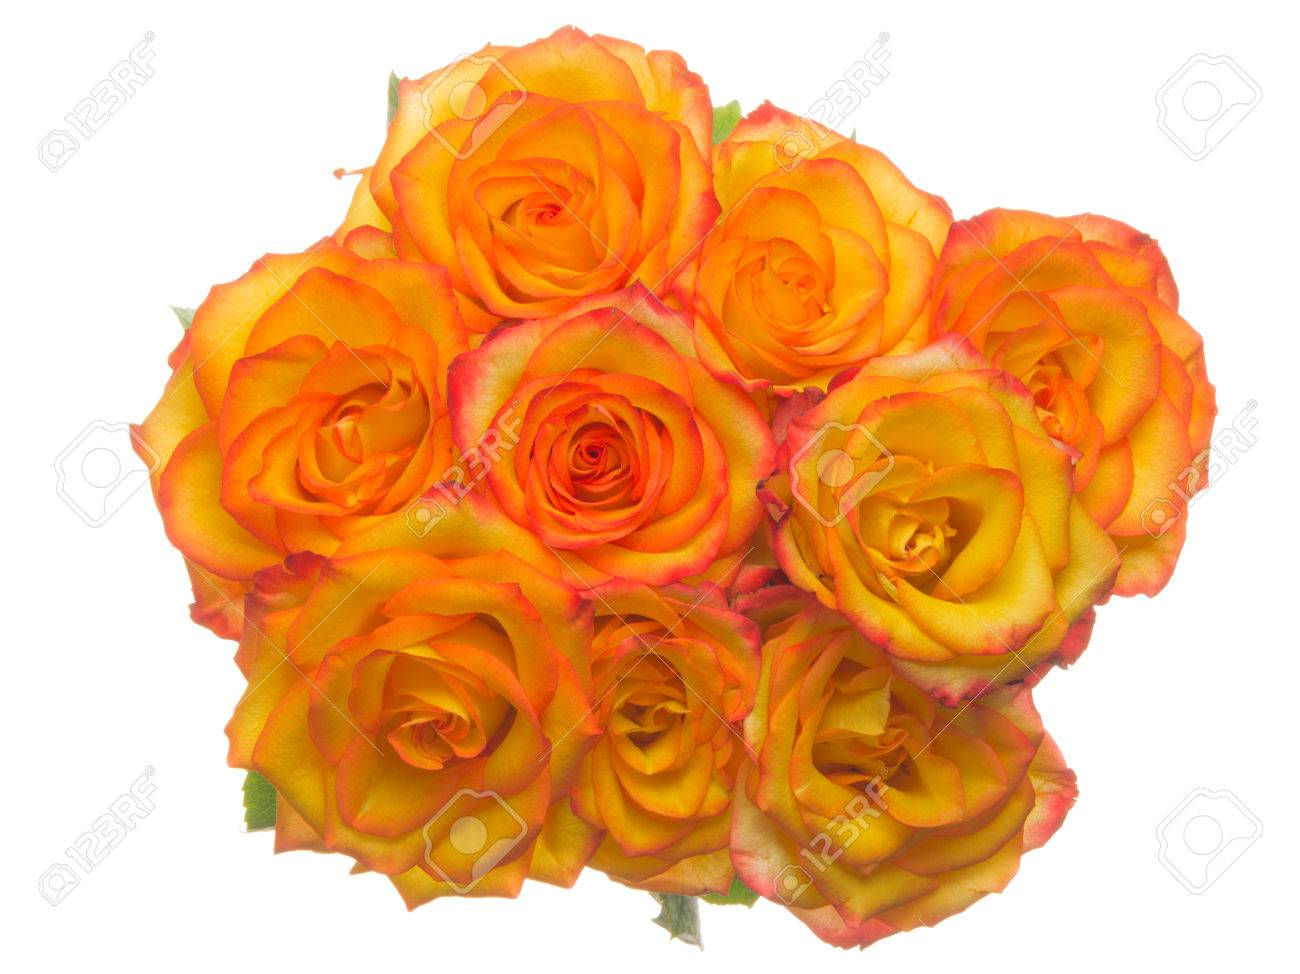 Beautiful Bright Unusual Bouquet Of Flowers Orange Yellow Rose